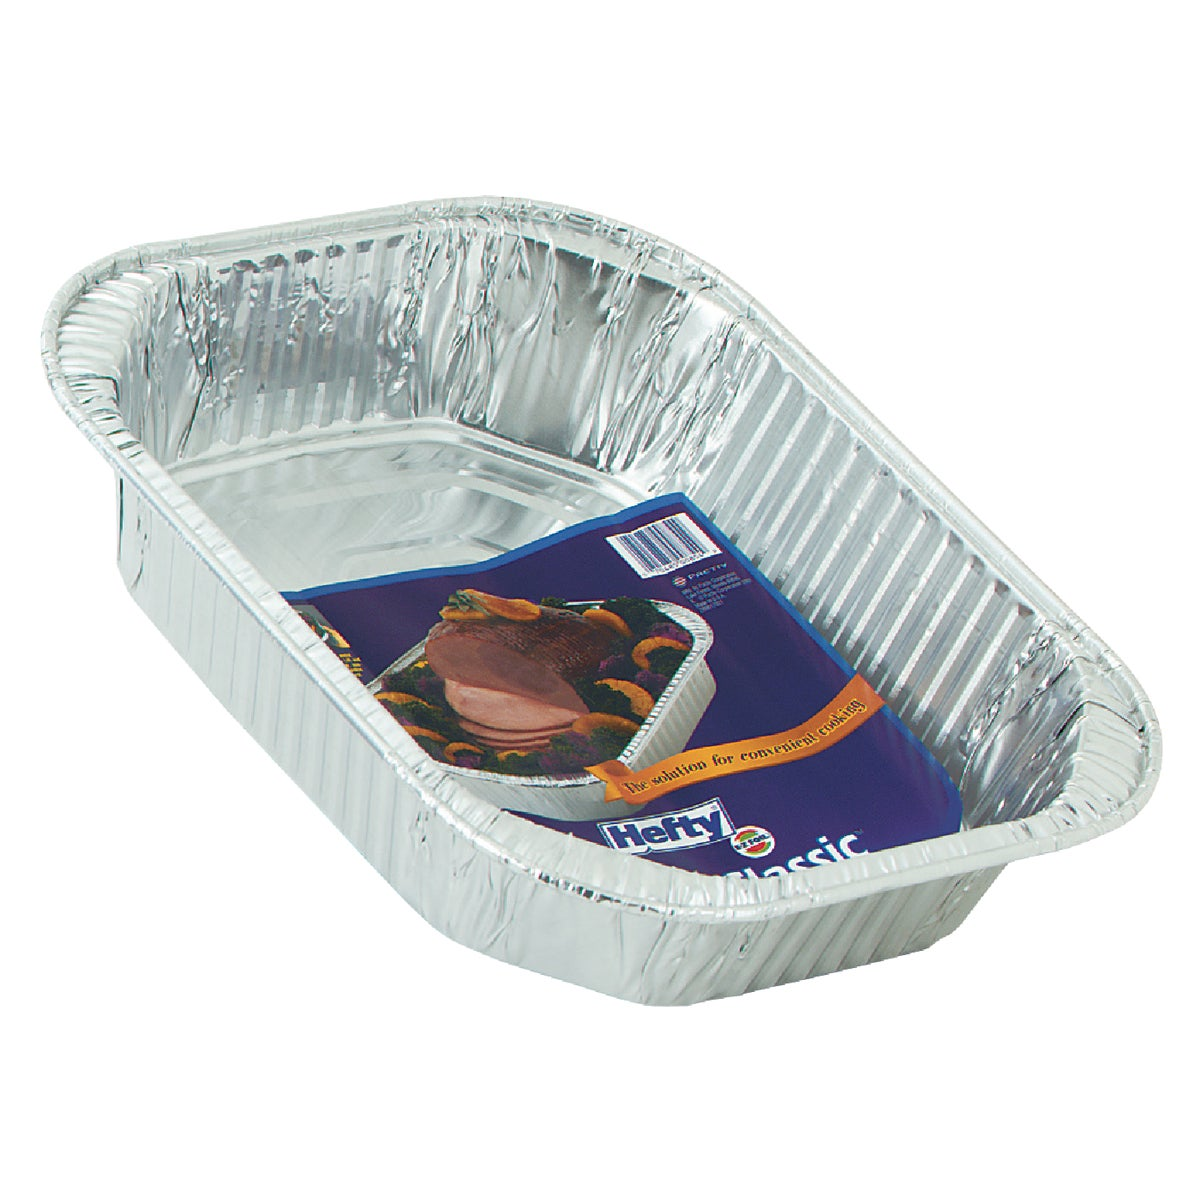 MEDIUM ROASTER PAN - 854 by Pactiv/ez Foil